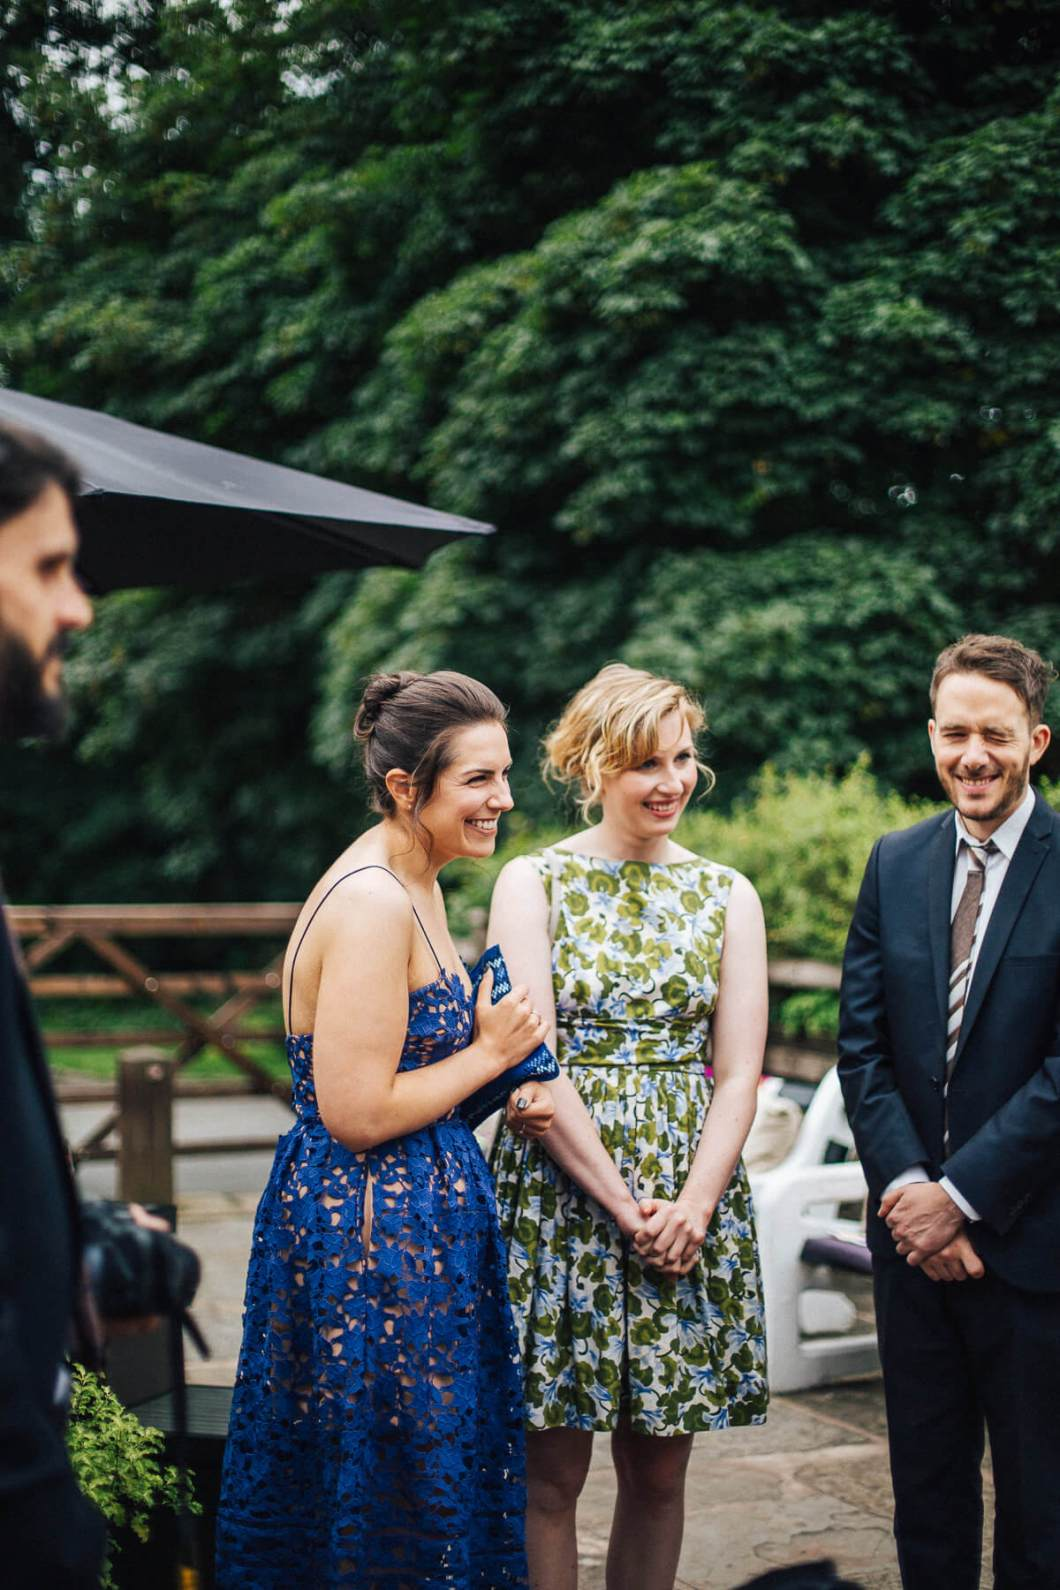 Natural photography of the guests